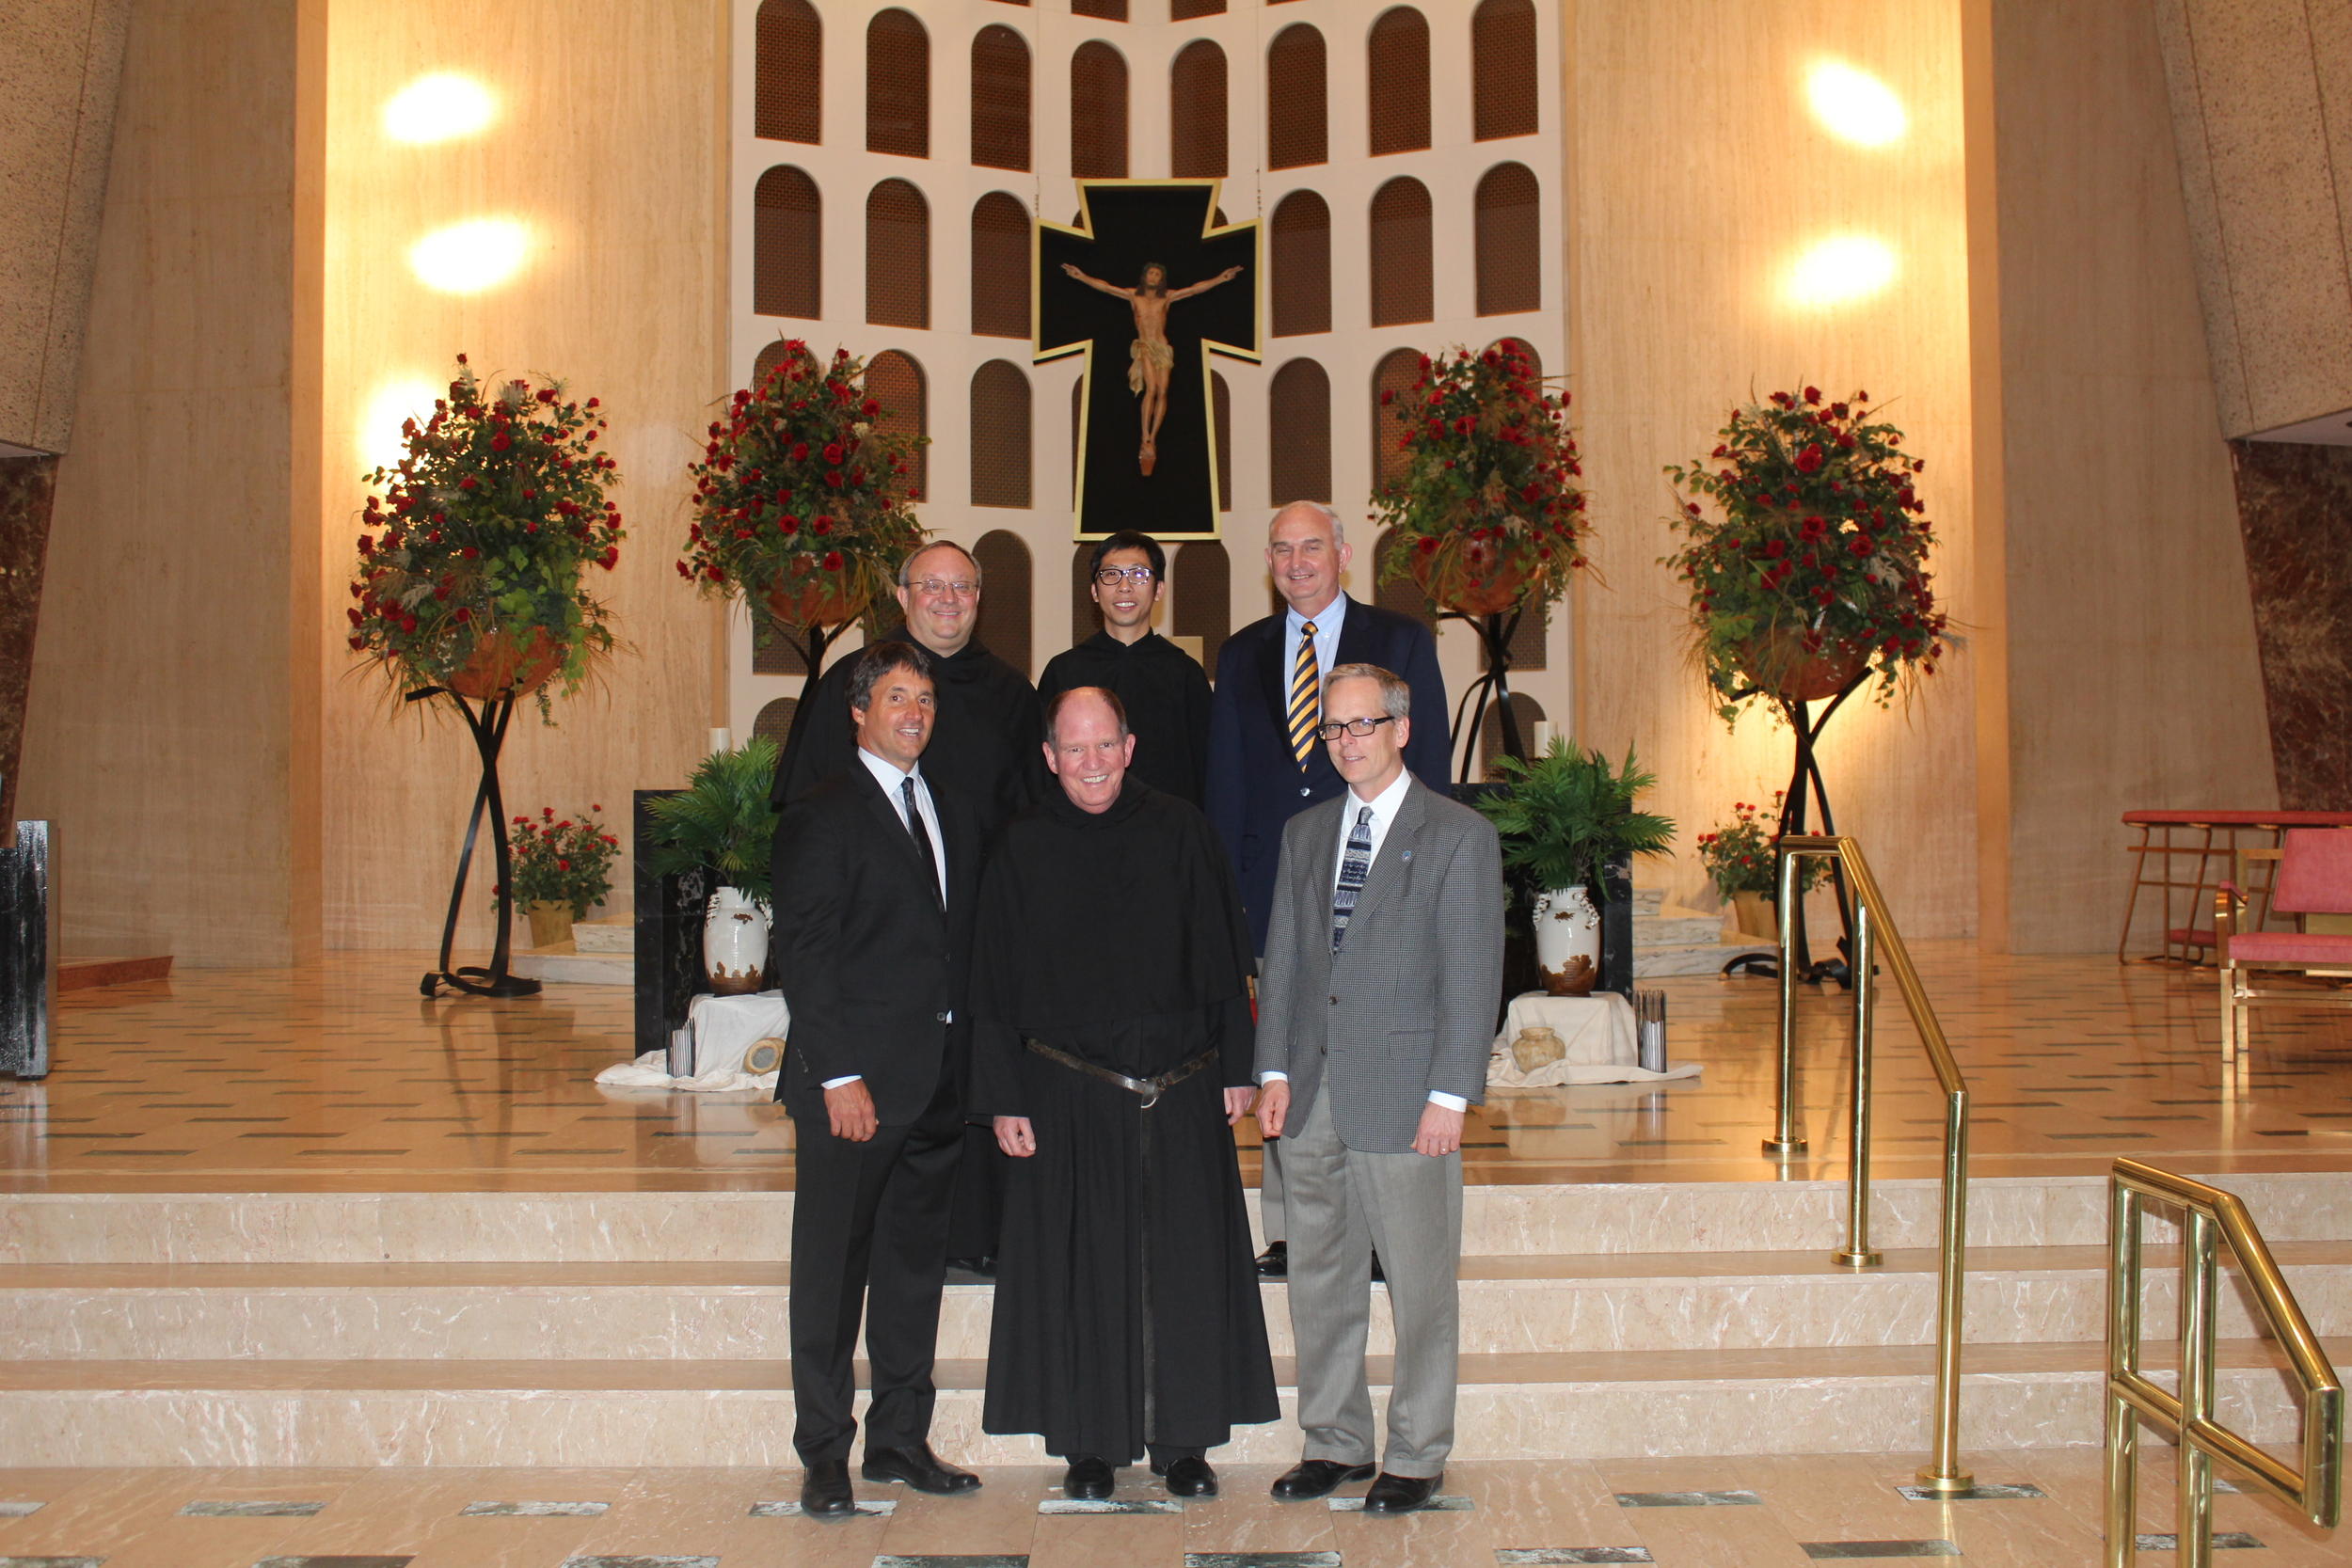 Pictured is the St. Rita of Cascia High School leadership team following the announcement of new appointments.   Front row, from left: Mike Zunica, new President and Chief Advancement Officer; Fr. Paul W. Galetto, new Head of School and Chief Executive Officer; and Principal Brendan Conroy.   Back row, from left: The Very Rev. Bernard C. Scianna, Augustinian Prior Provincial; Fr. Richie Mercado, new Director of Augustinian Mission and Chaplain; and Ernie Mrozek, who resumes his role as Chairman of the Board.